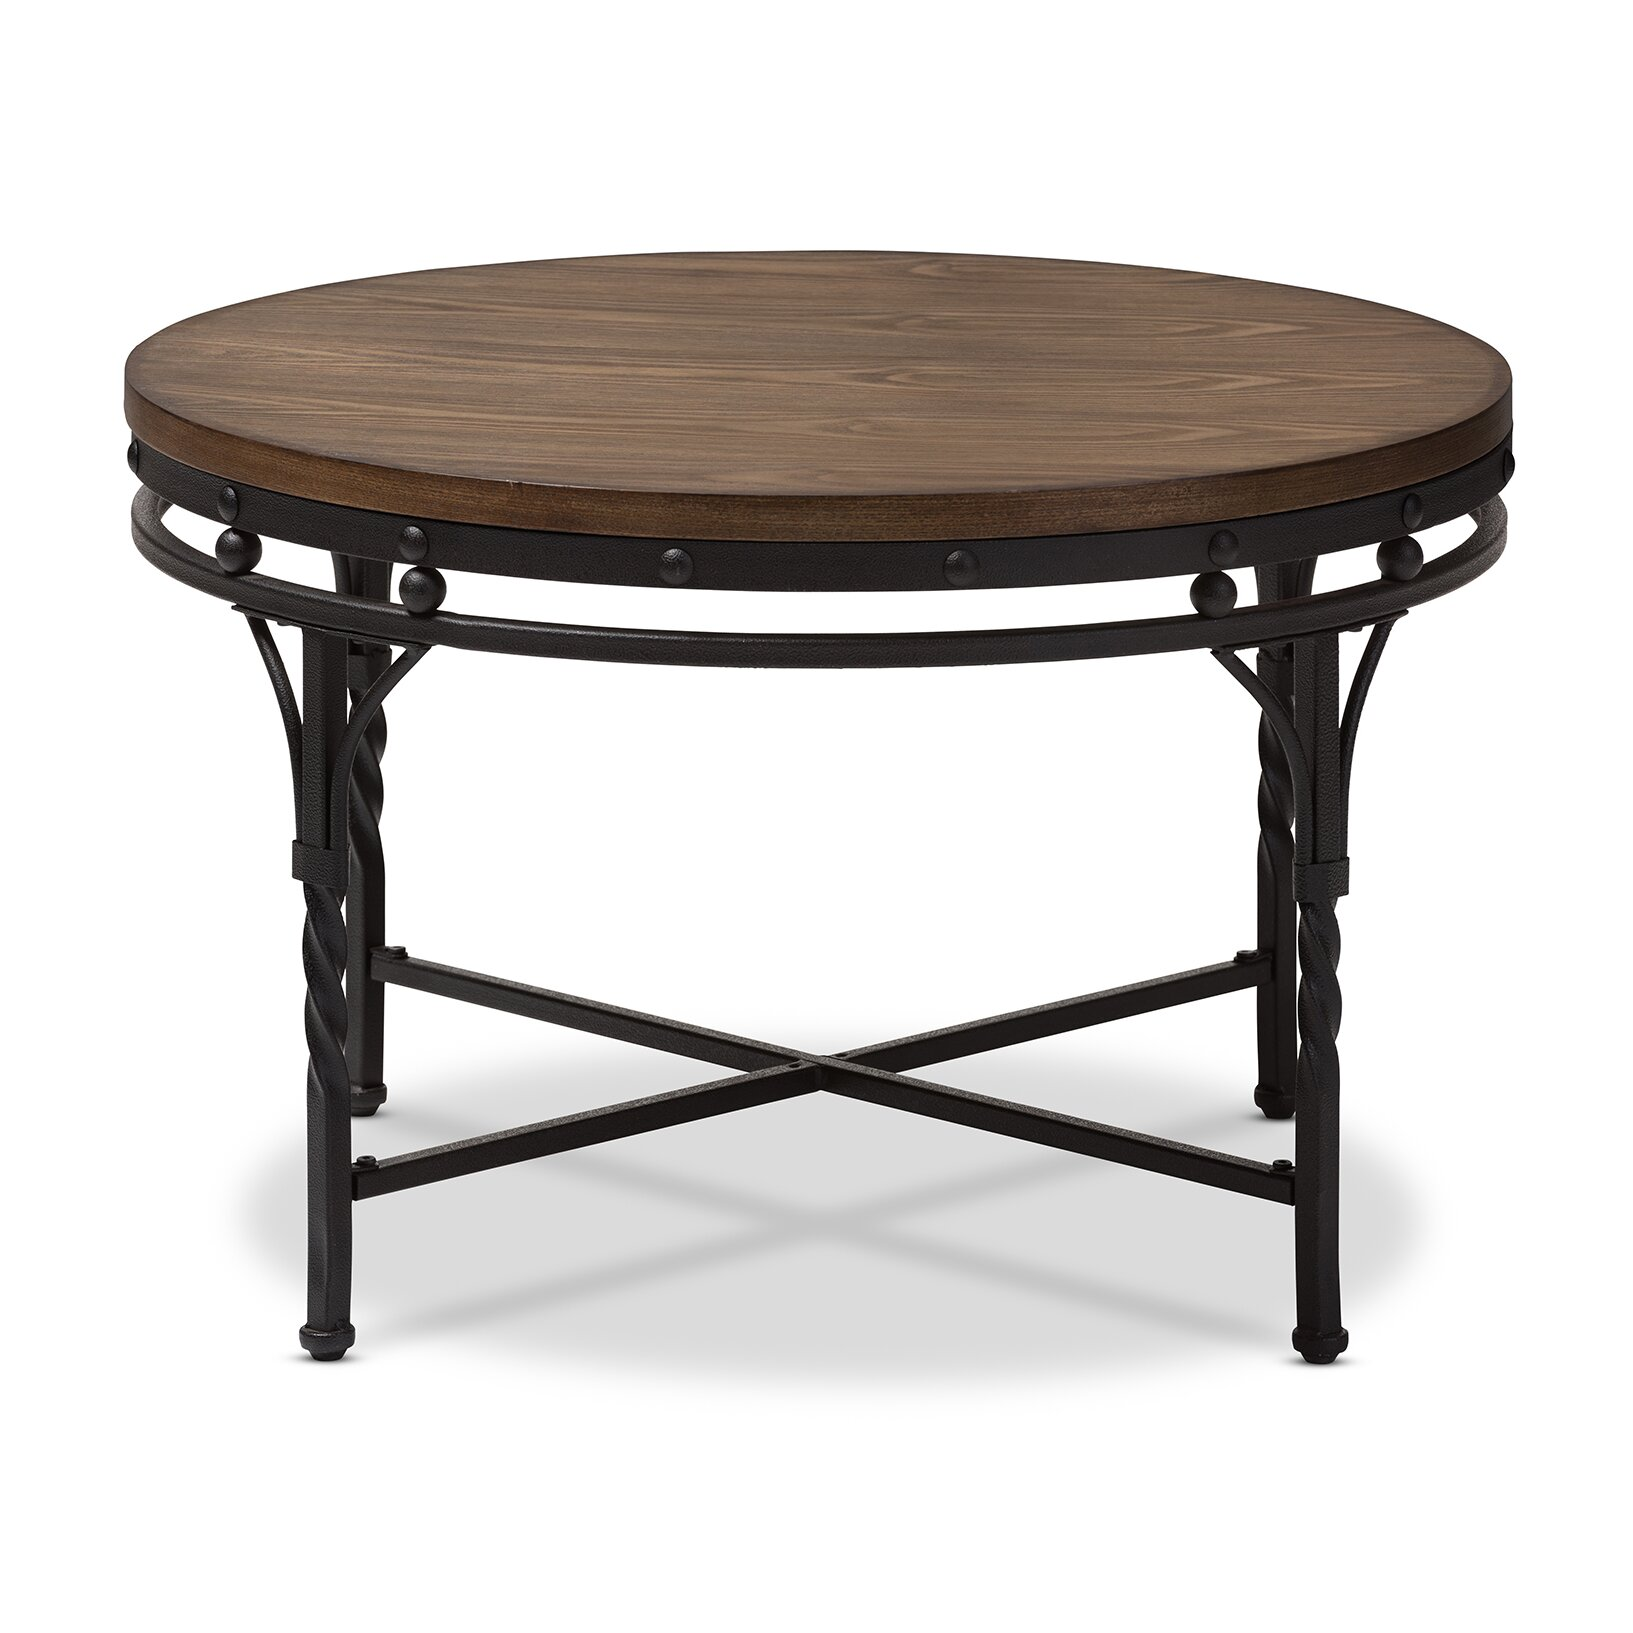 Vintage Casual Coffee Tables: Romeo Coffee Table